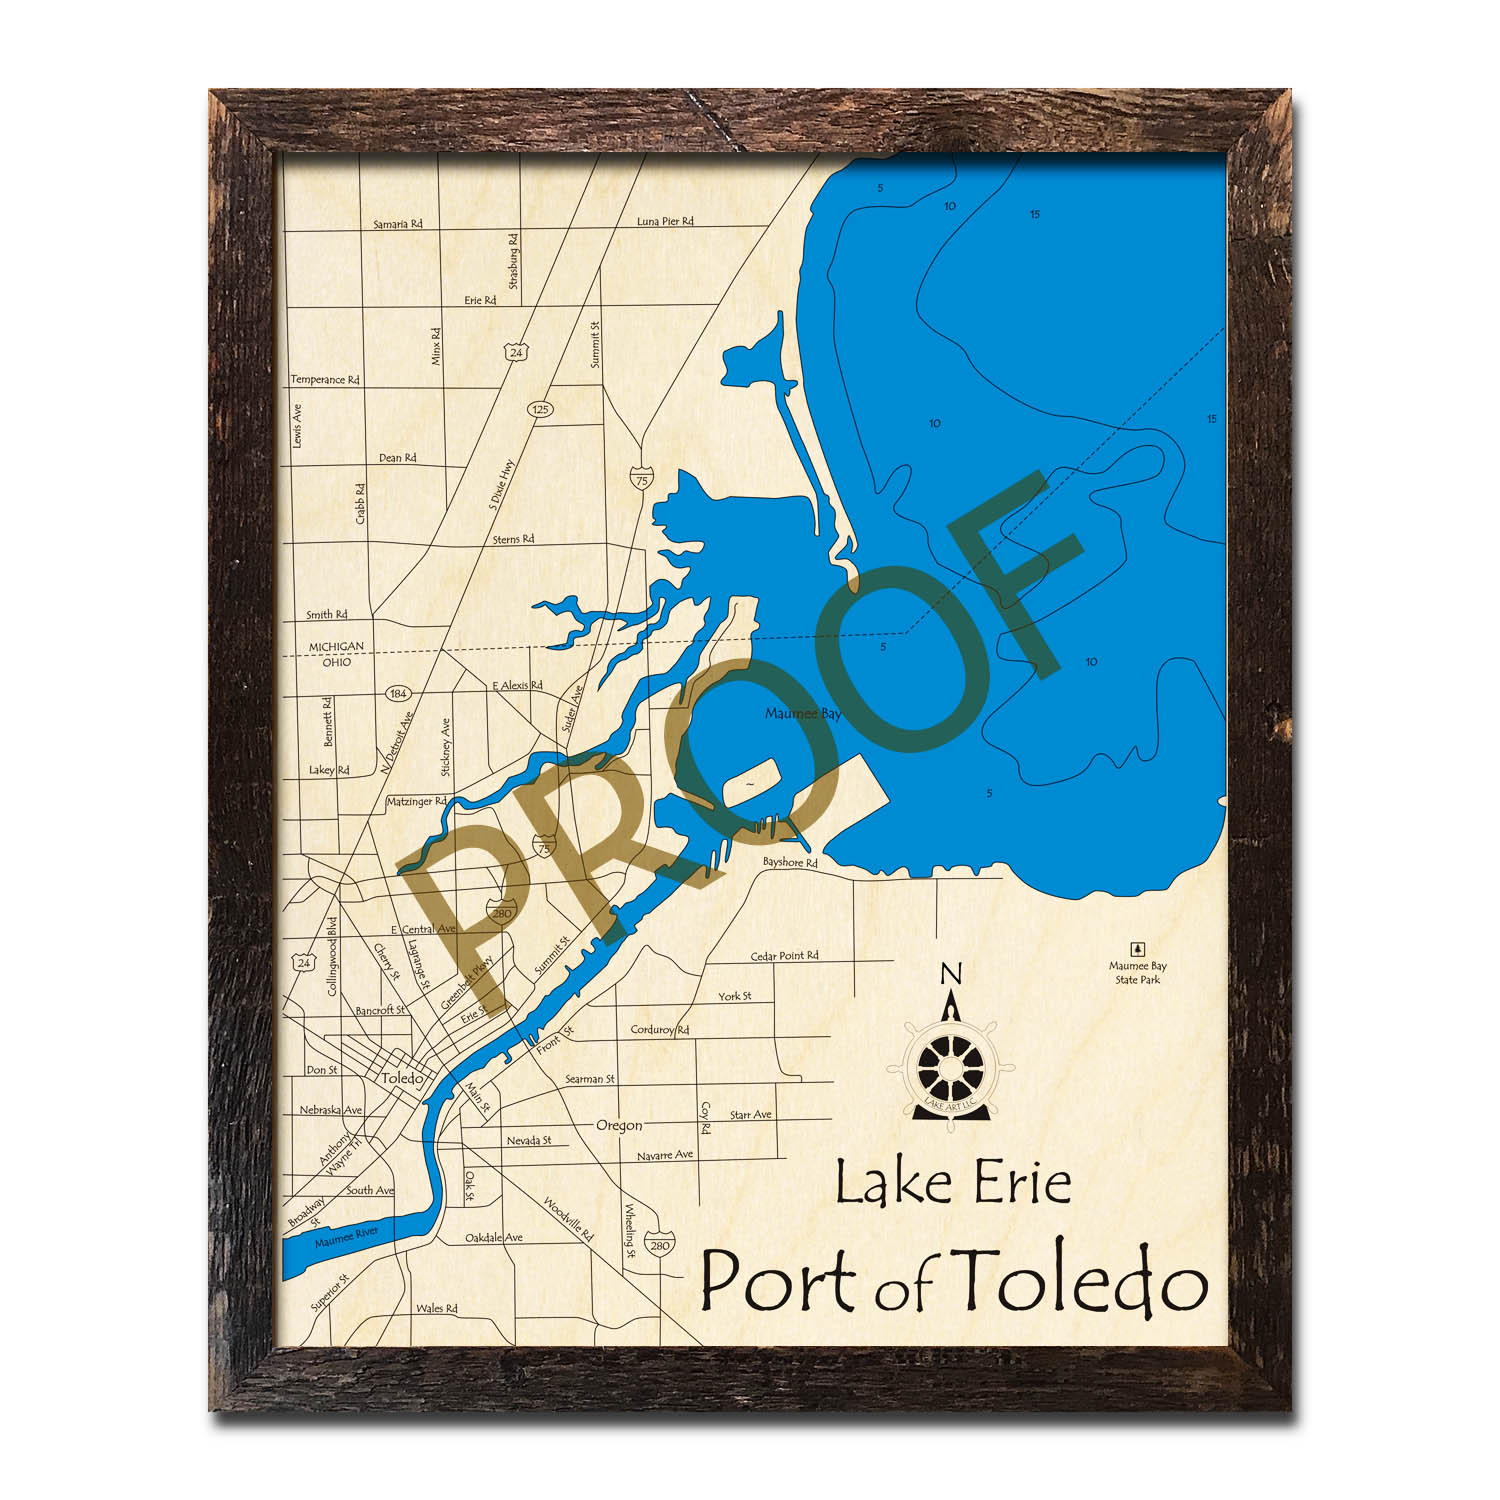 Port of Toledo, Lake Erie Wood Map